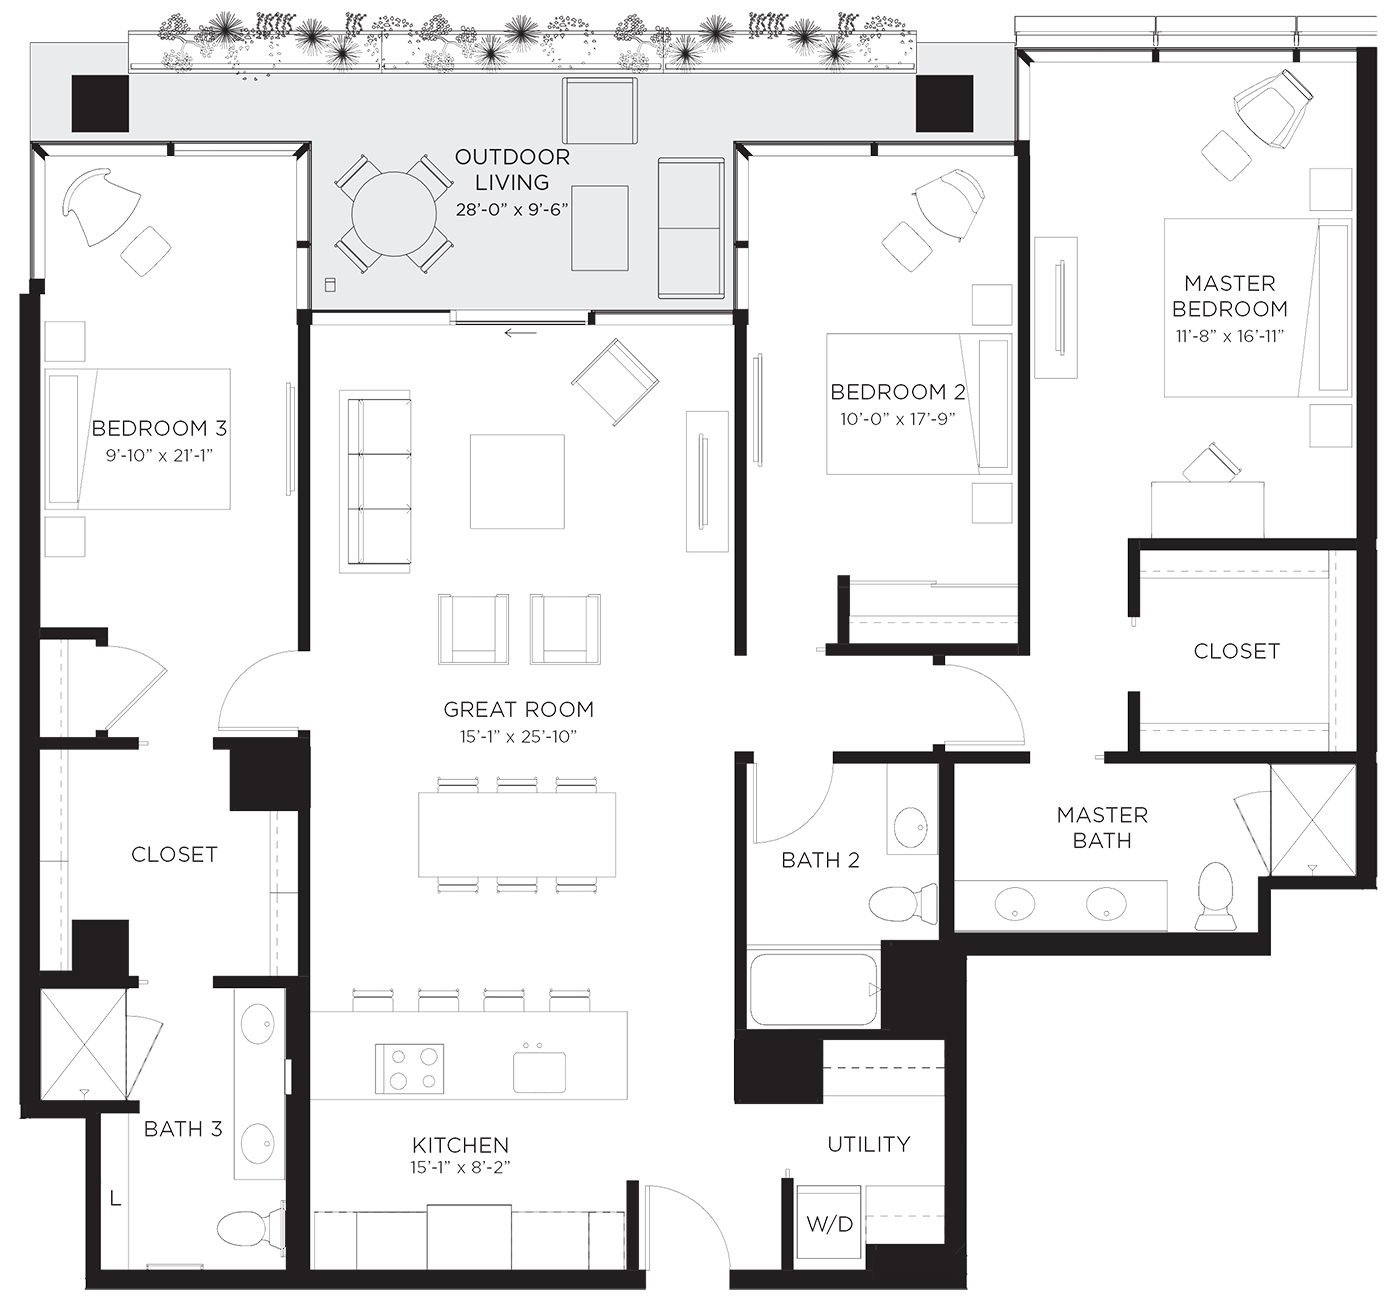 Unit 03Ha Floor Plan